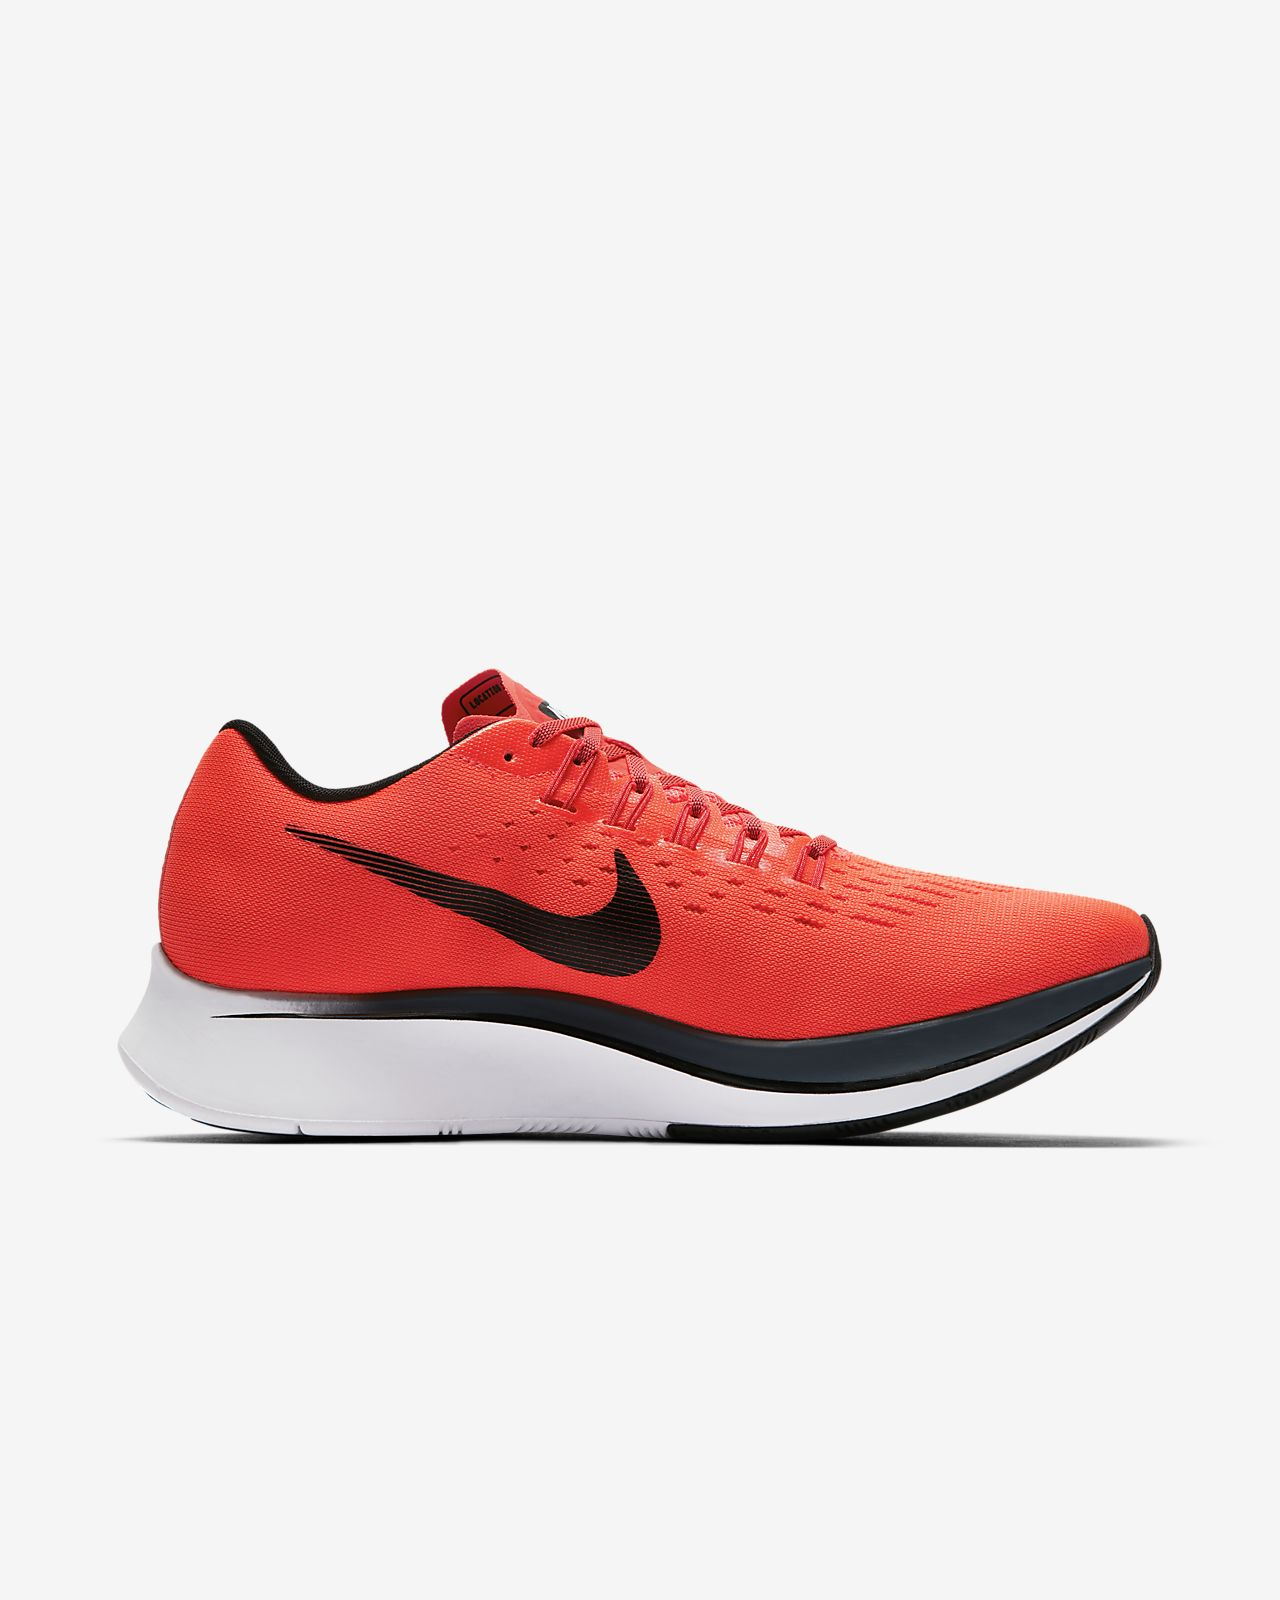 new style 9da9f 8aa4e ... Chaussure de running Nike Zoom Fly pour Homme